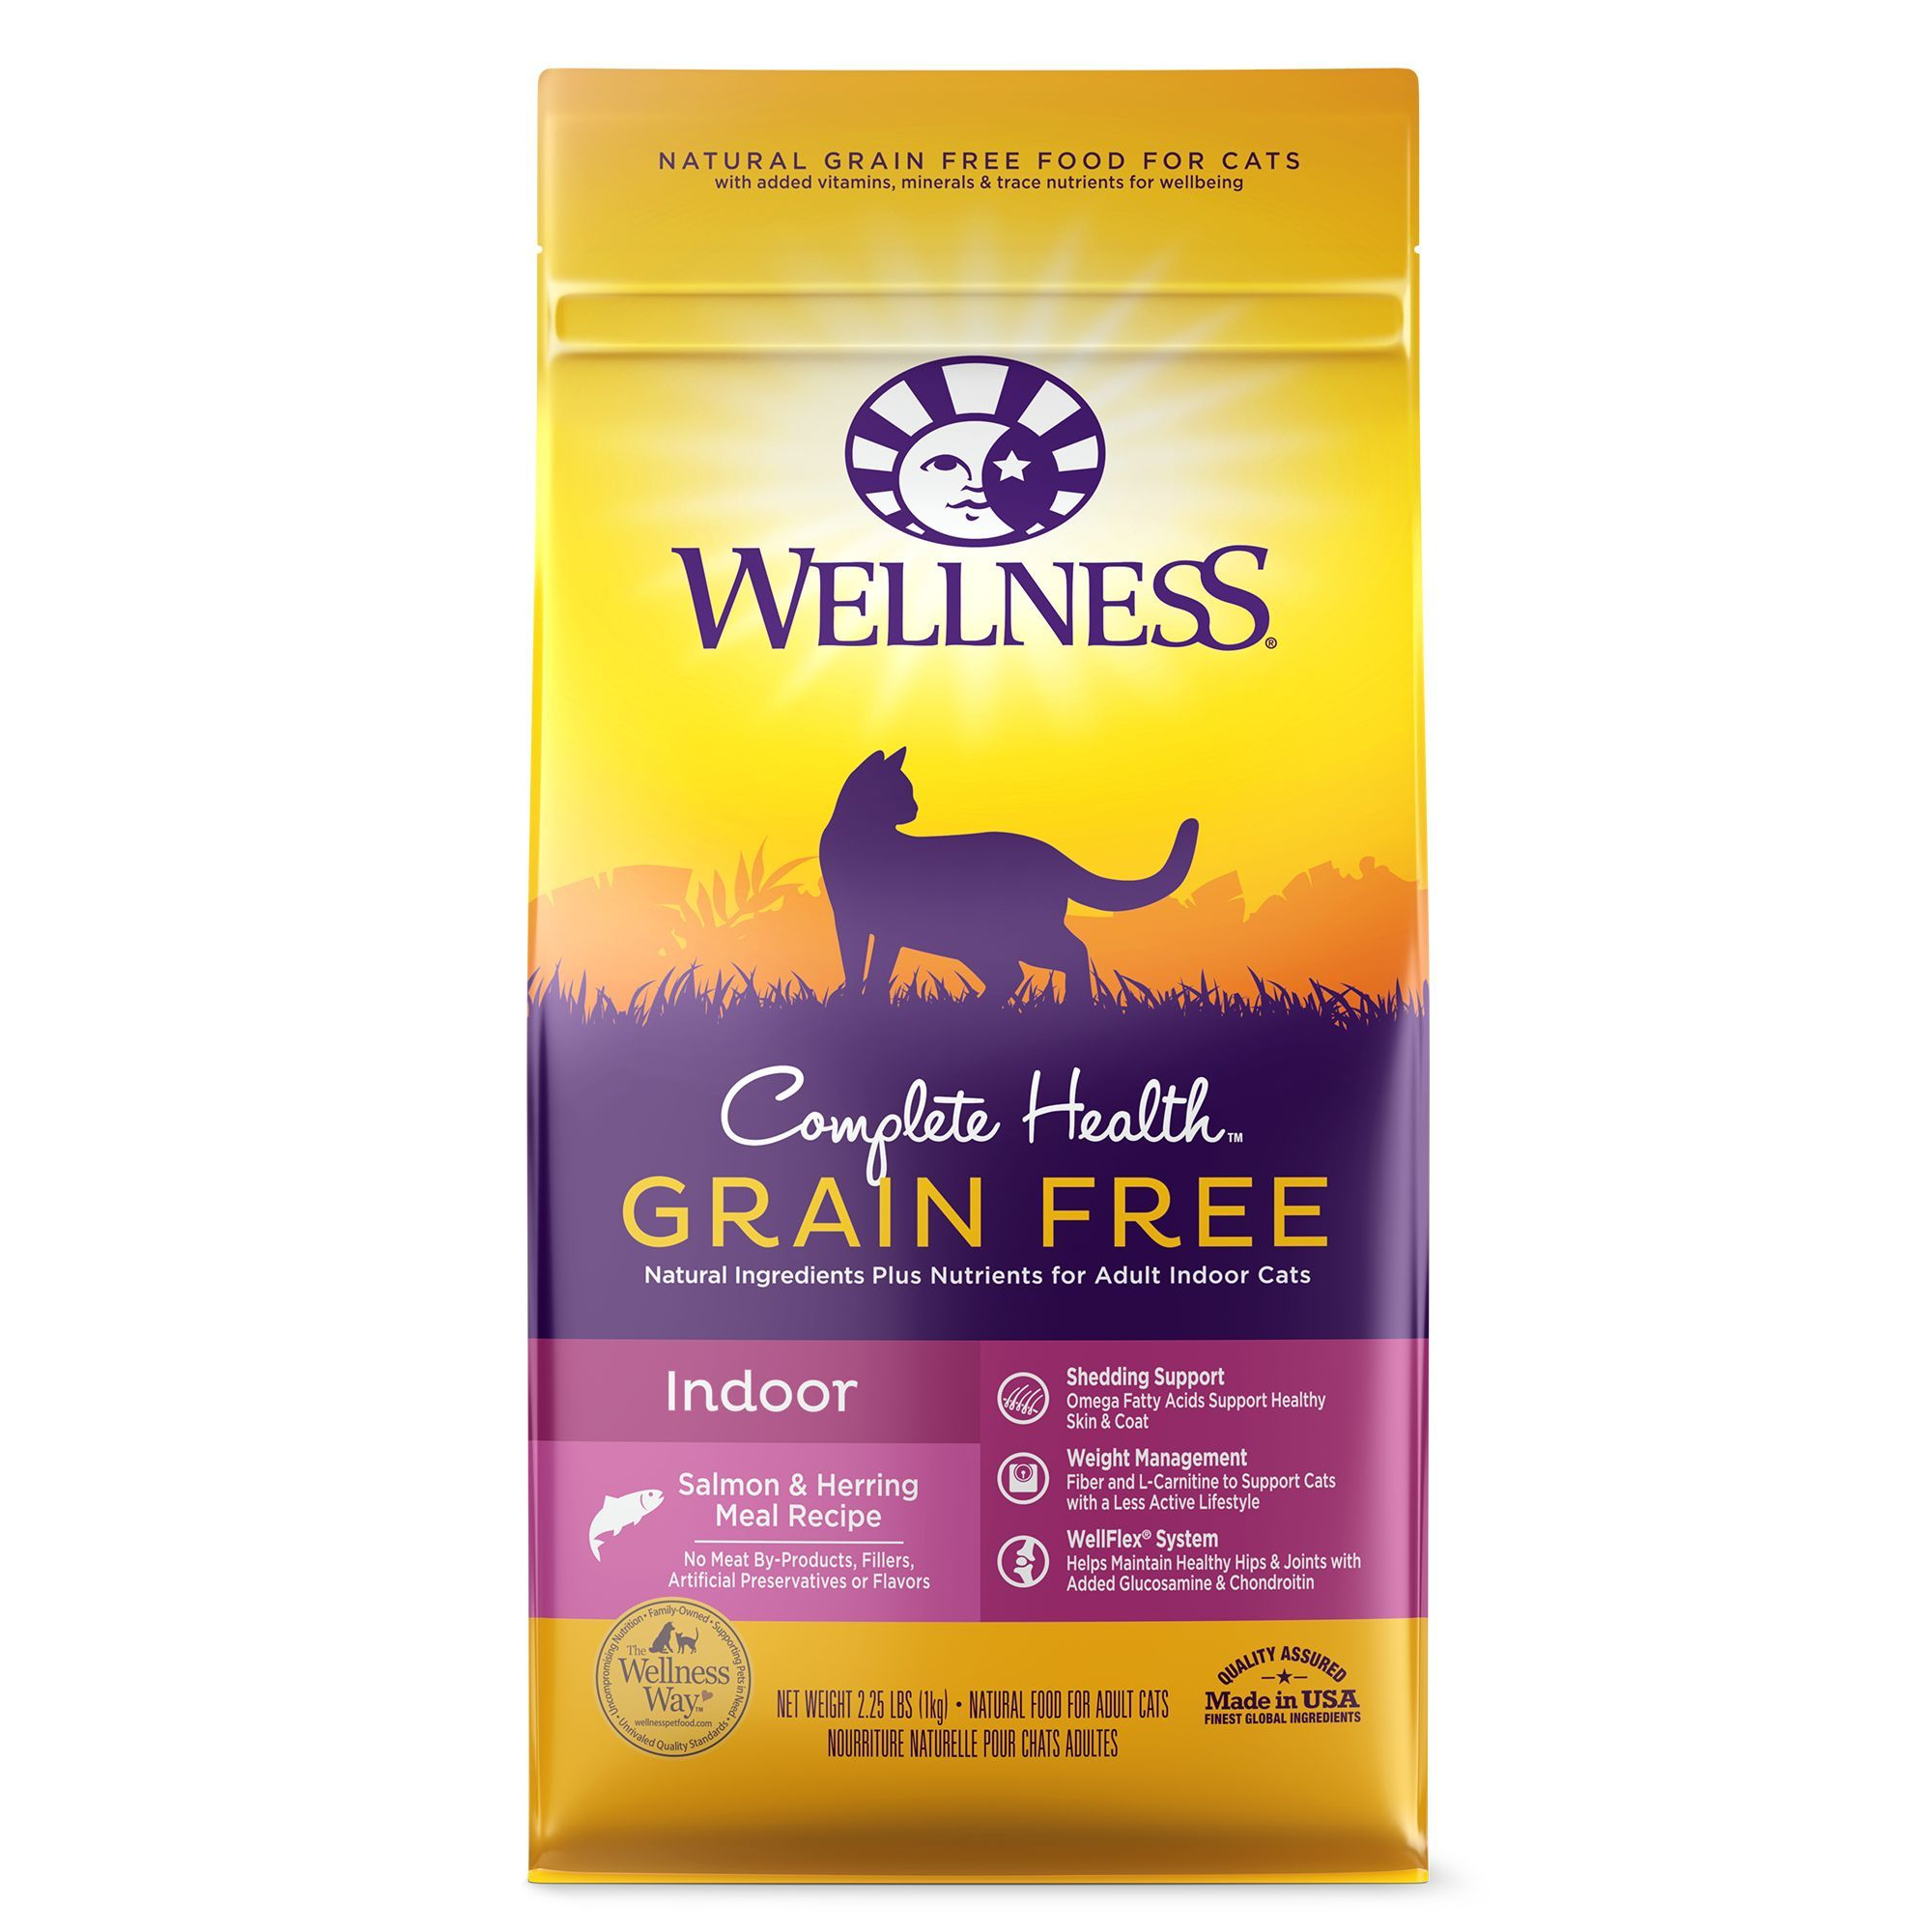 Wellness Complete Health Indoor Cat Food Natural Grain Free Salmon And Herring Meal Size 2 25 Lb Pink Kibble Adult Dry Cat Food Cat Food Natural Pet Food